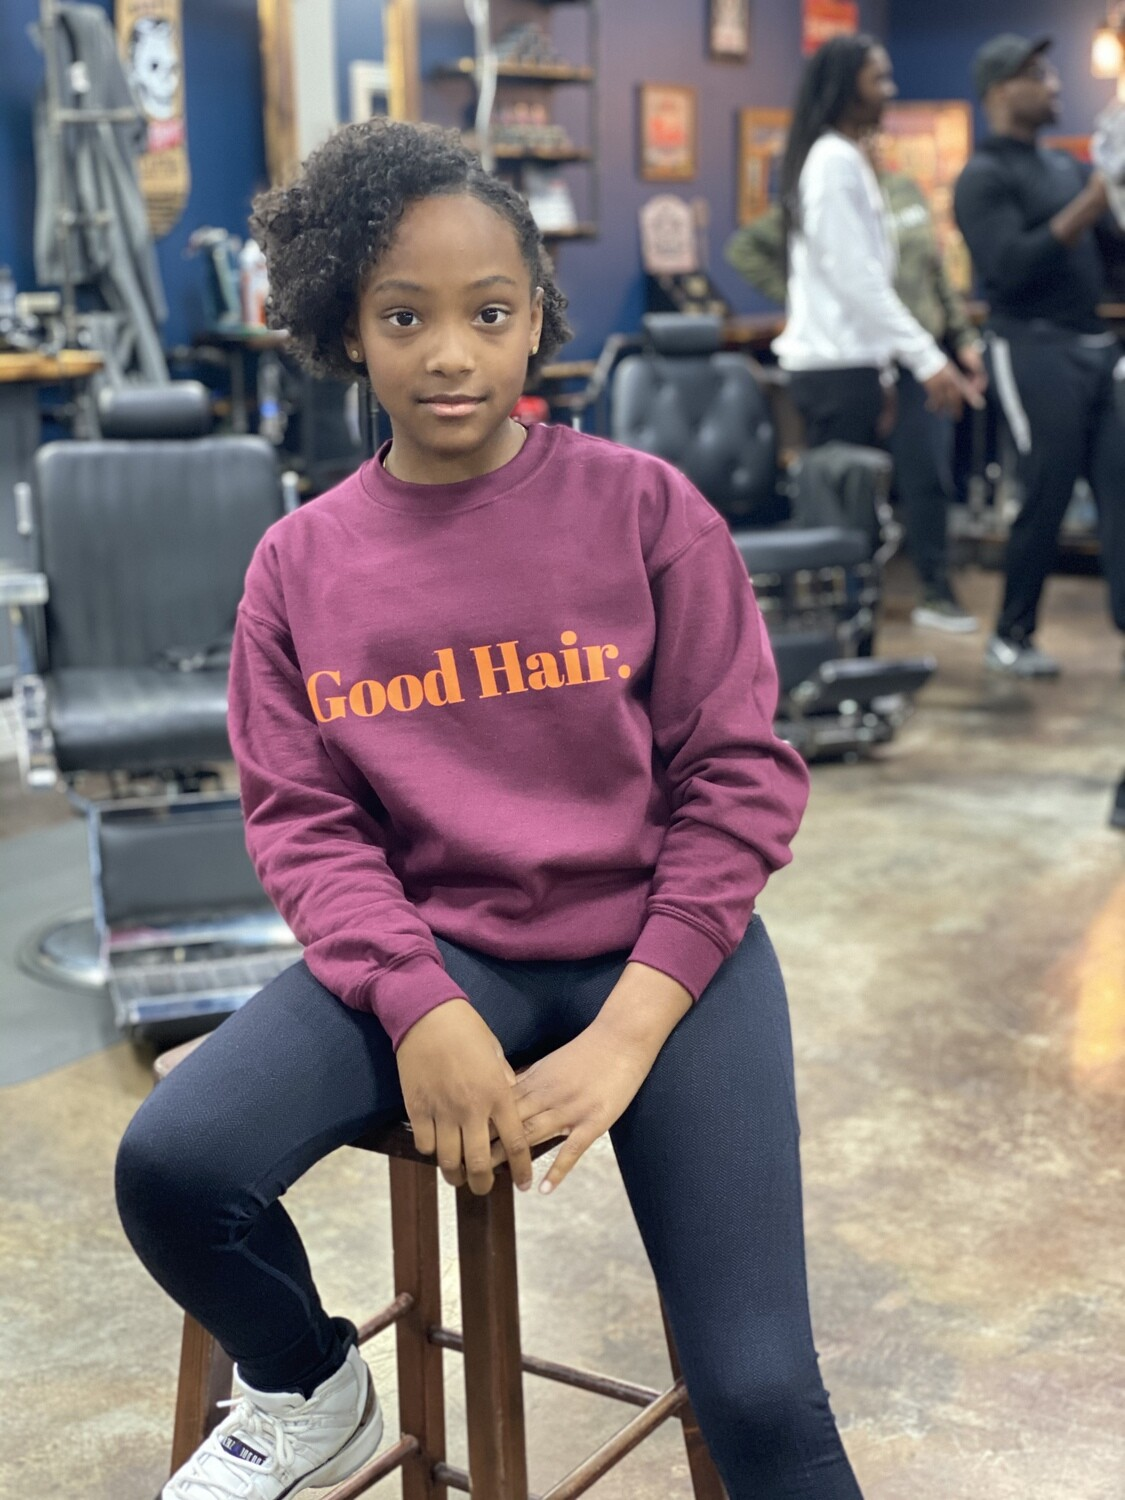 Good Hair. Kids Sweatshirt